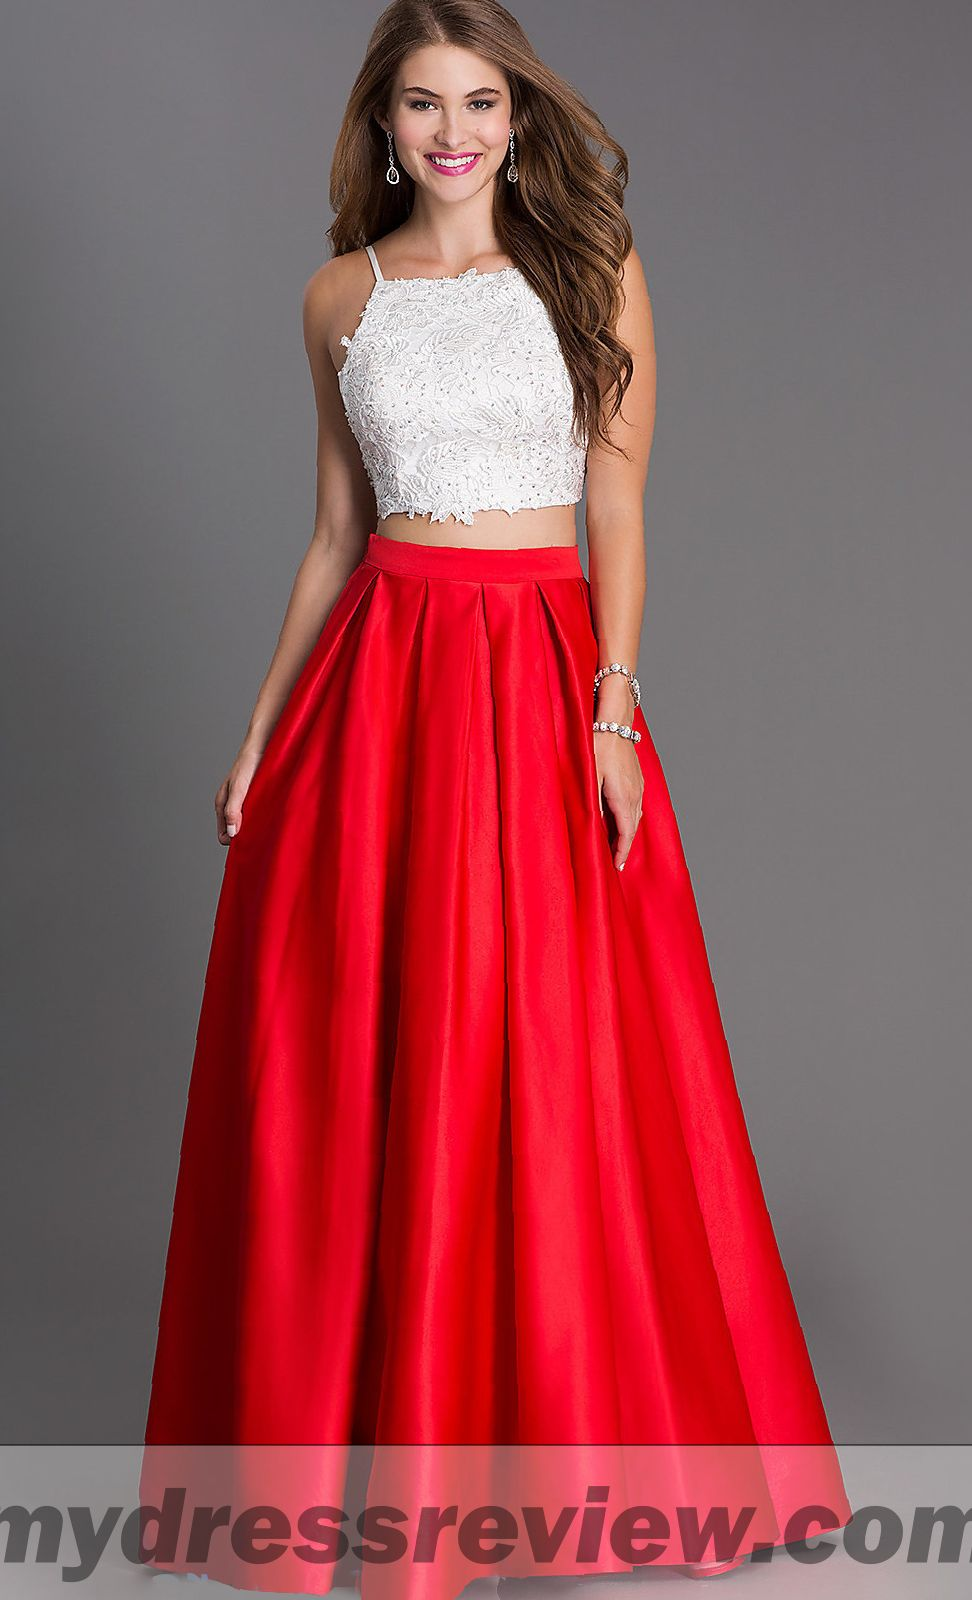 d1af39587f3 Red And Black Two Piece Prom Dress And Review 2017 - MyDressReview